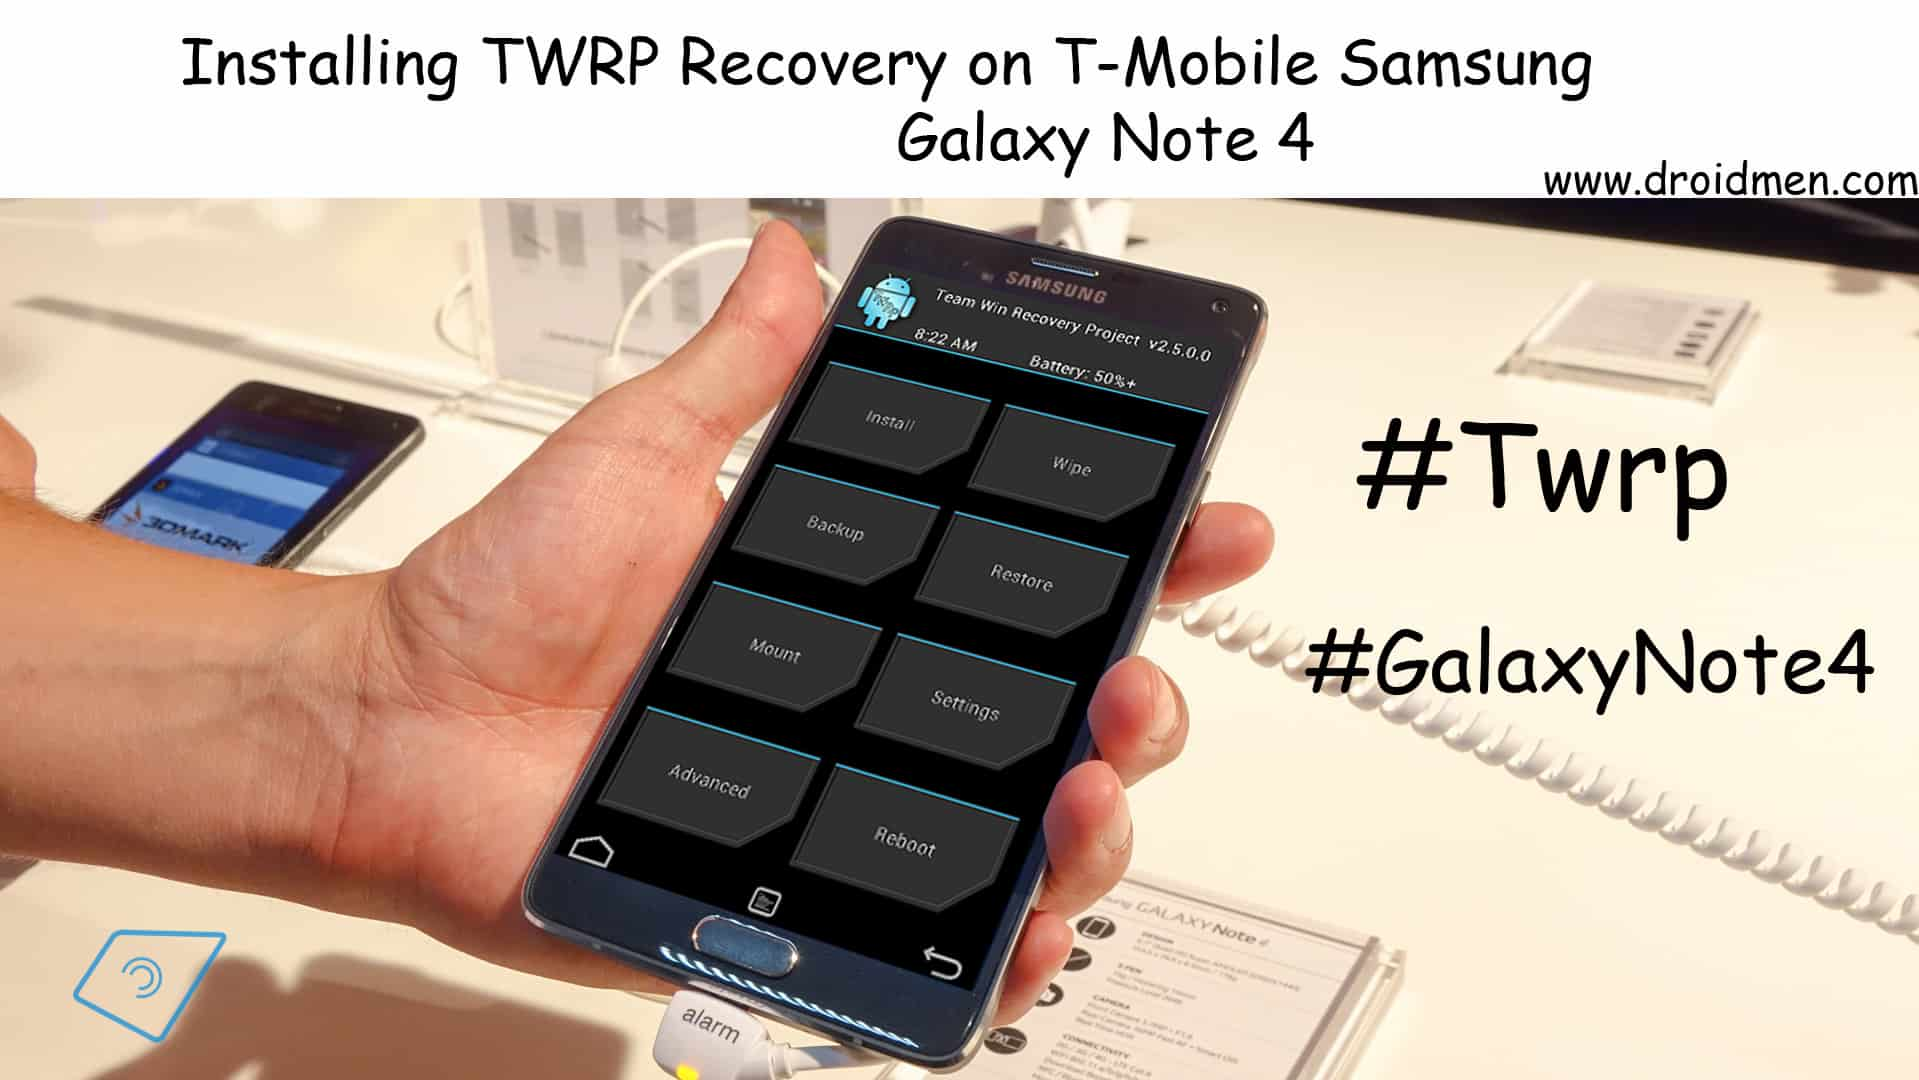 Install TWRP Recovery on T-Mobile Galaxy Note 4 using Odin. 1